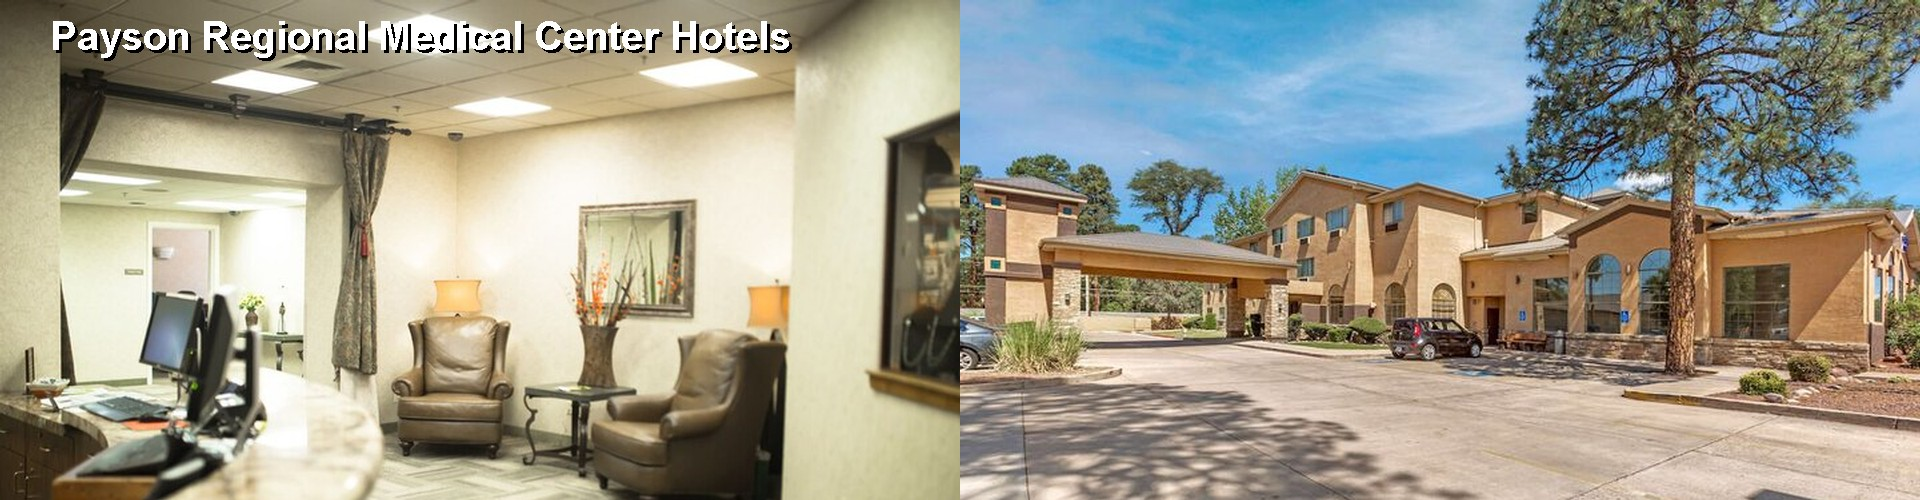 5 Best Hotels near Payson Regional Medical Center